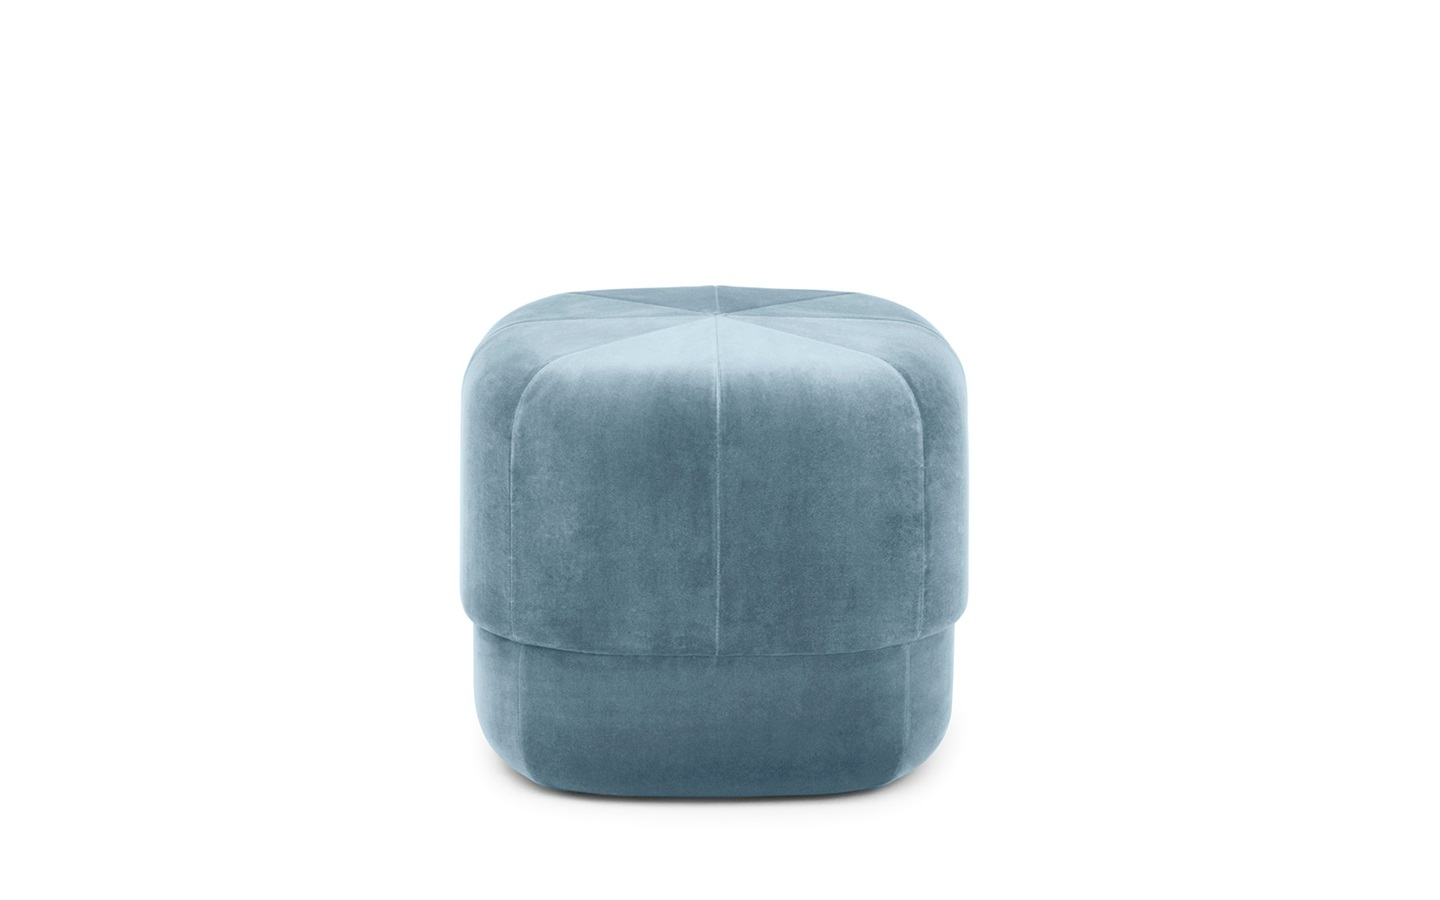 circus pouf small in light blue velour u2013 nordic moroccan pouf